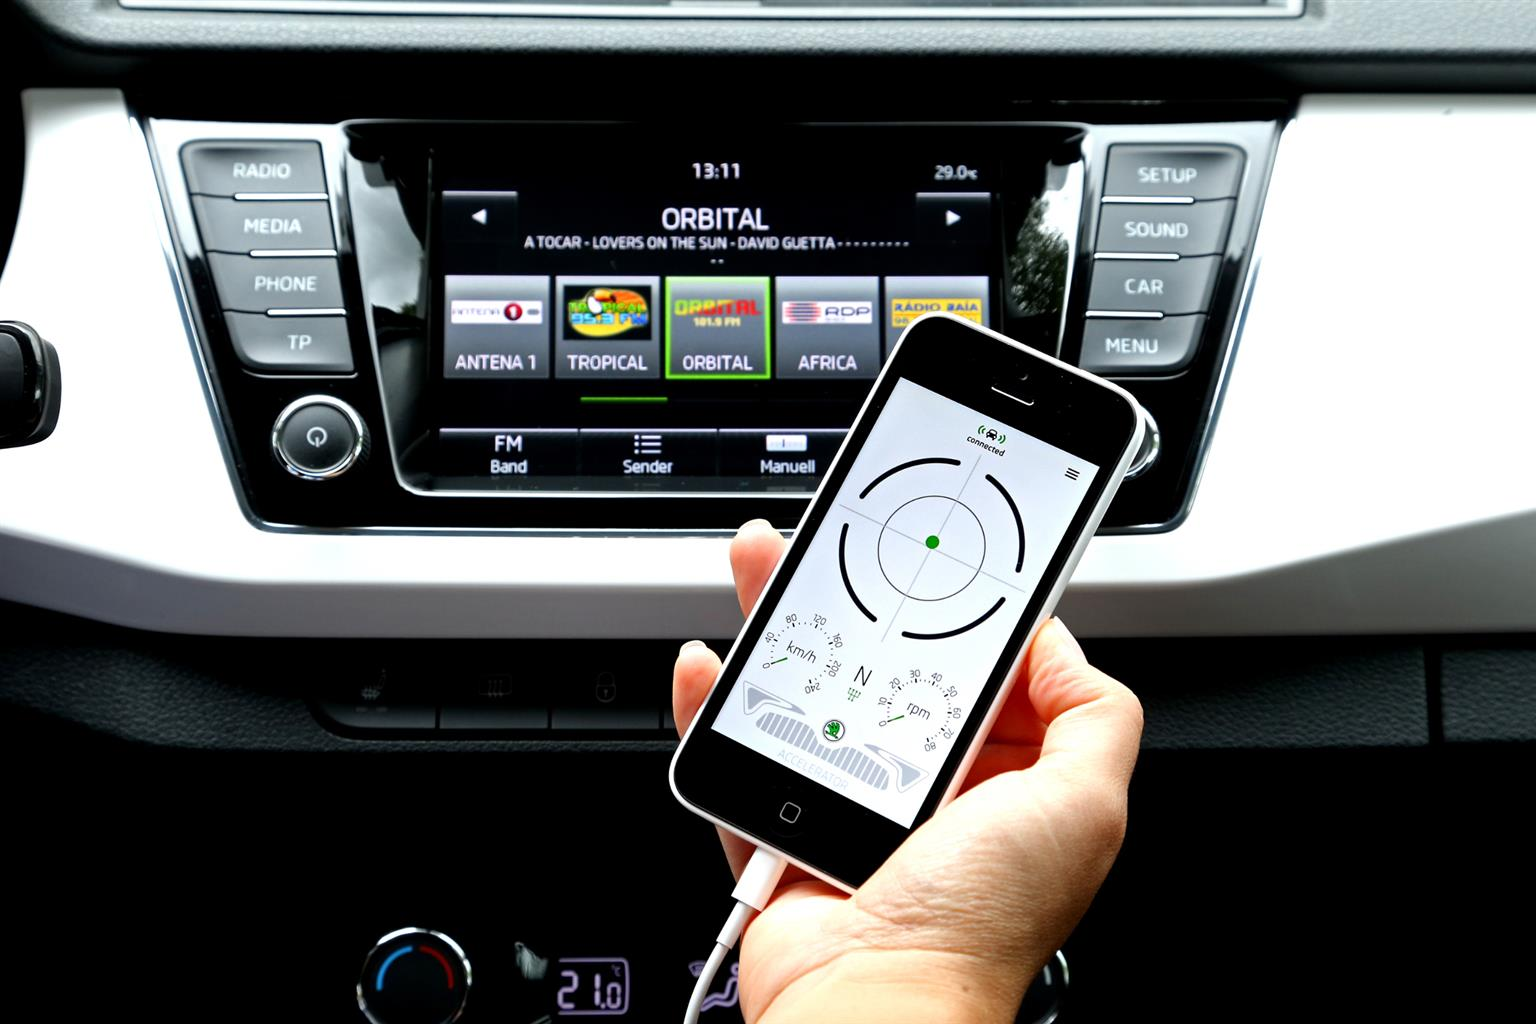 Connected Car Award a ŠKODA